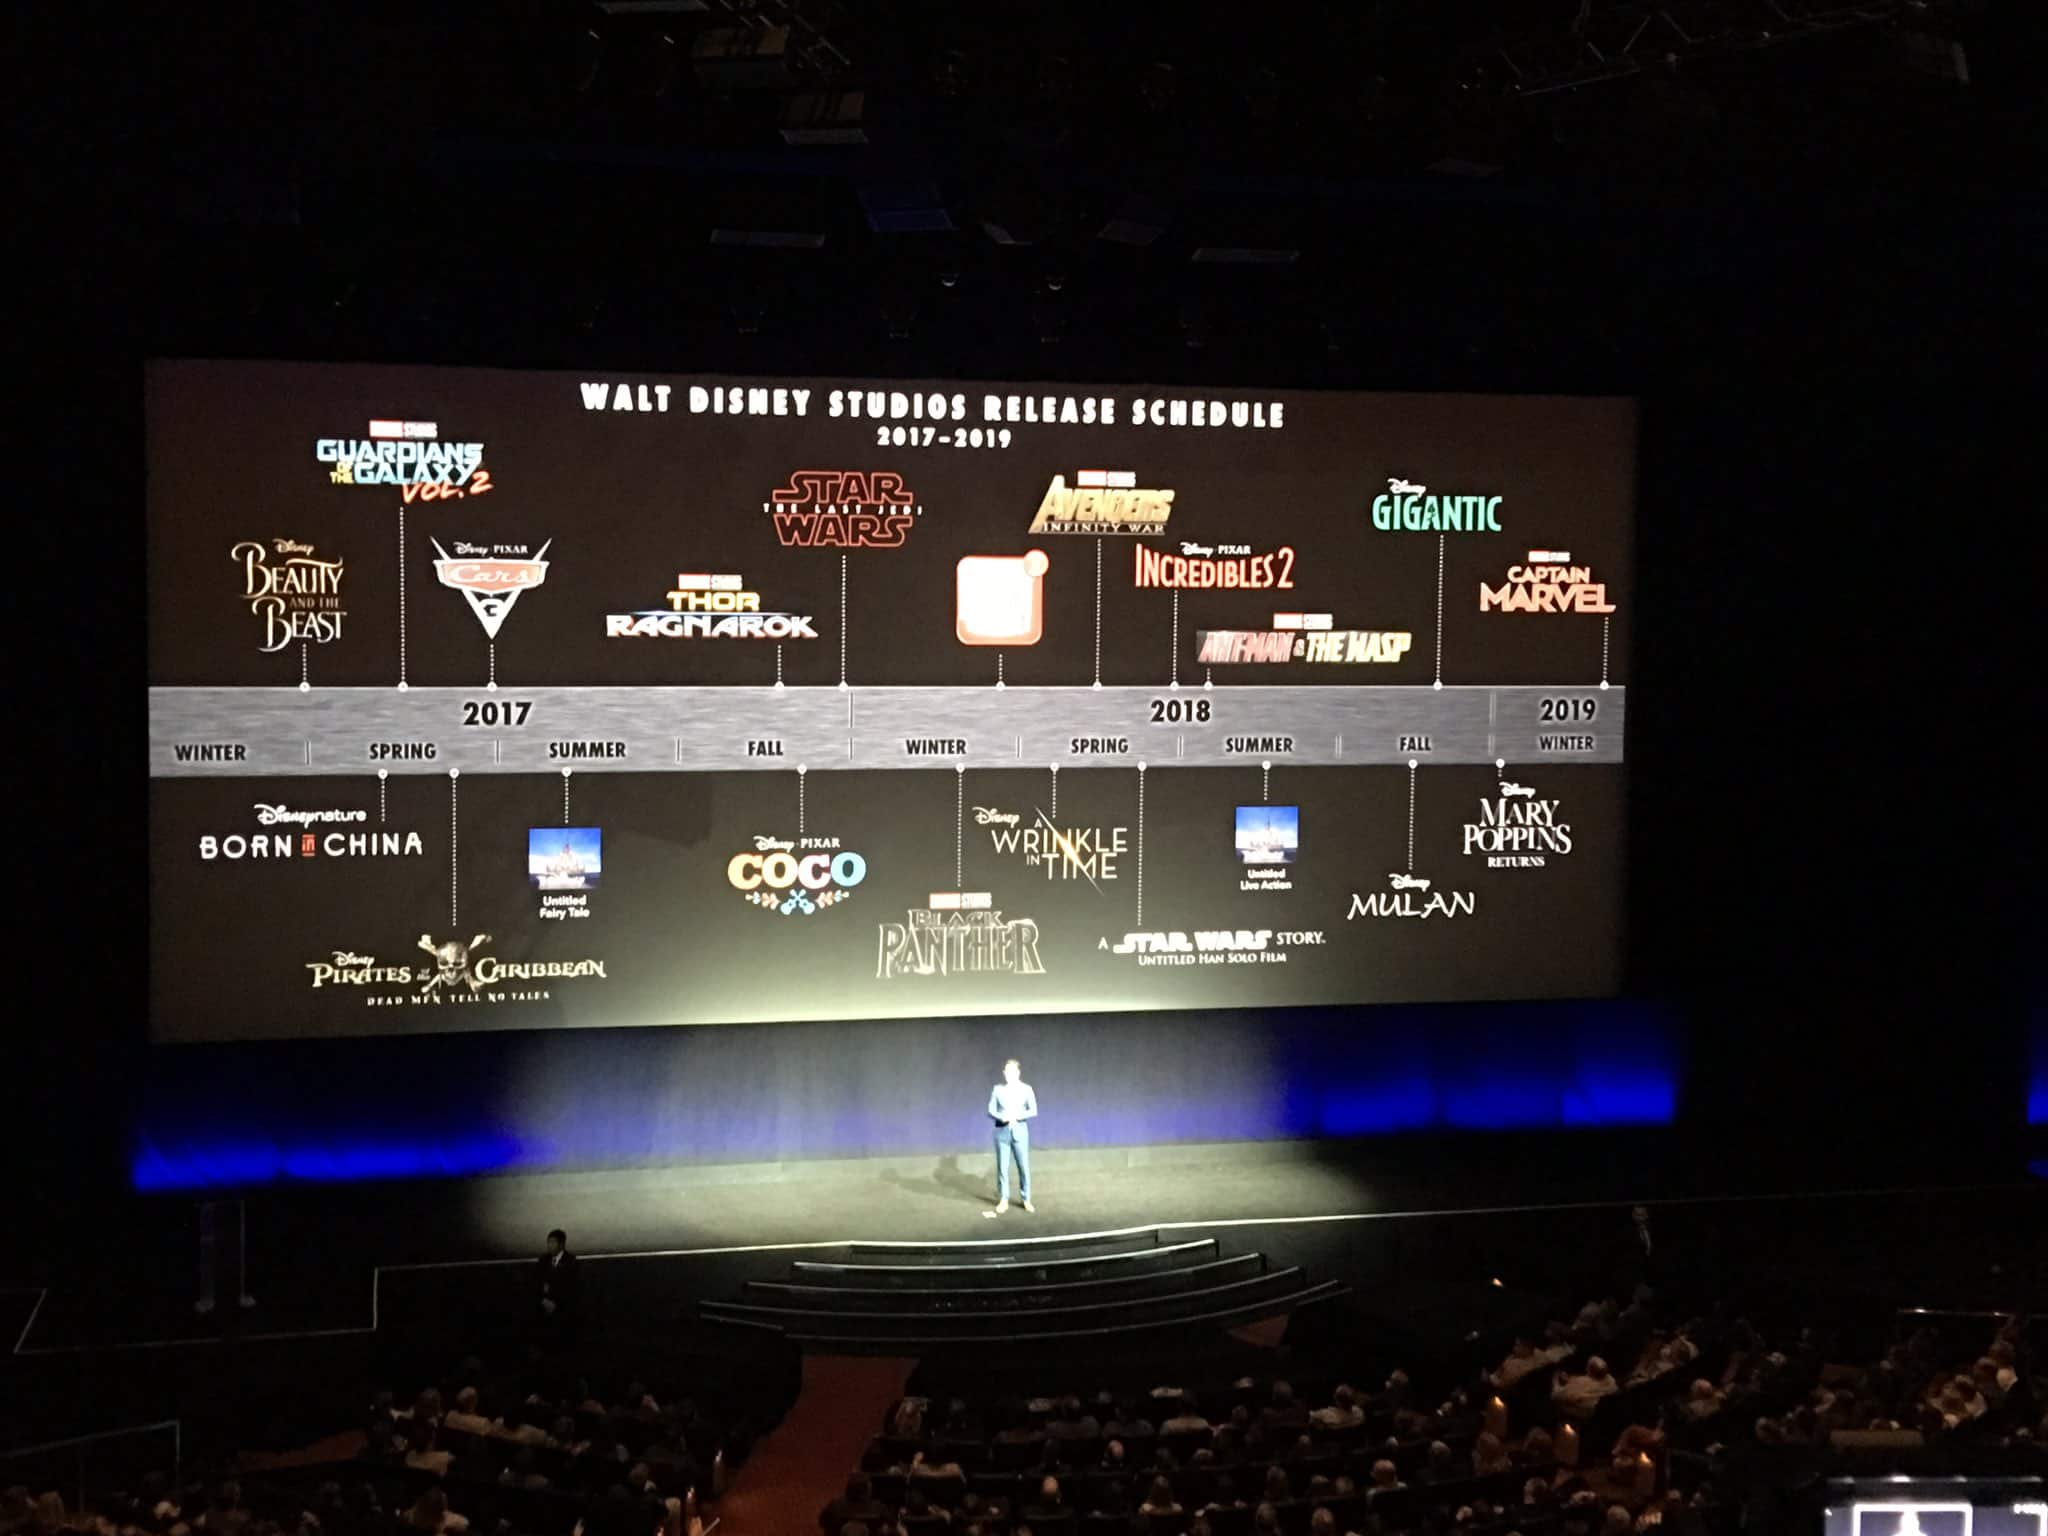 Here is Disney's Full Release Schedule of Movies Up Until ...